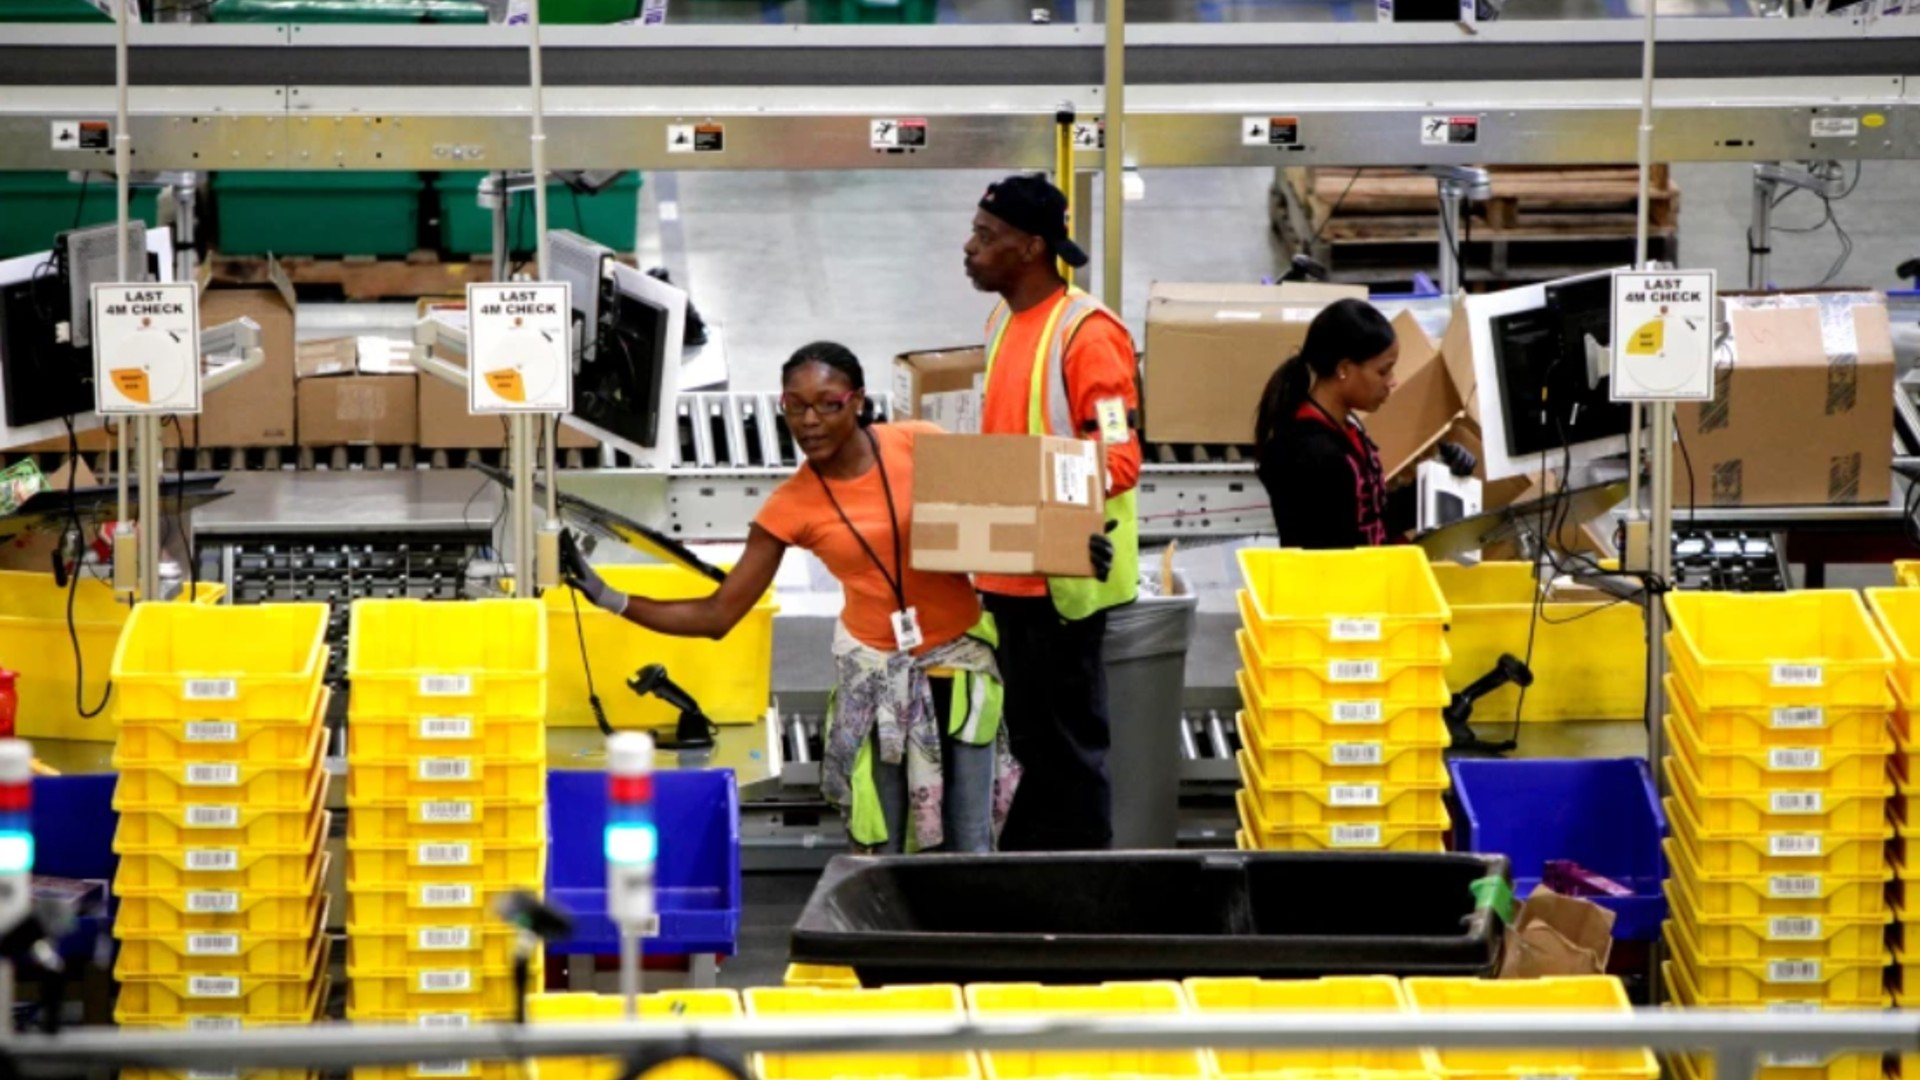 A campaign to unionize Amazon warehouse workers in Alabama earlier this year failed. Above, workers at an Amazon fulfillment center in San Bernardino. (Irfan Khan / Los Angeles Times)